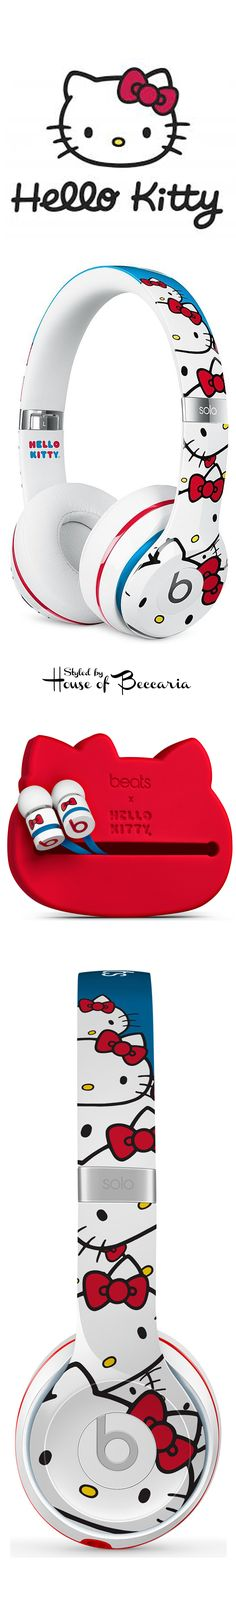 ~Travel in style: 40th Anniversary Hello Kitty x Beats Solo2 On-Ear Headphones & urBeats Earbuds | House of Beccaria